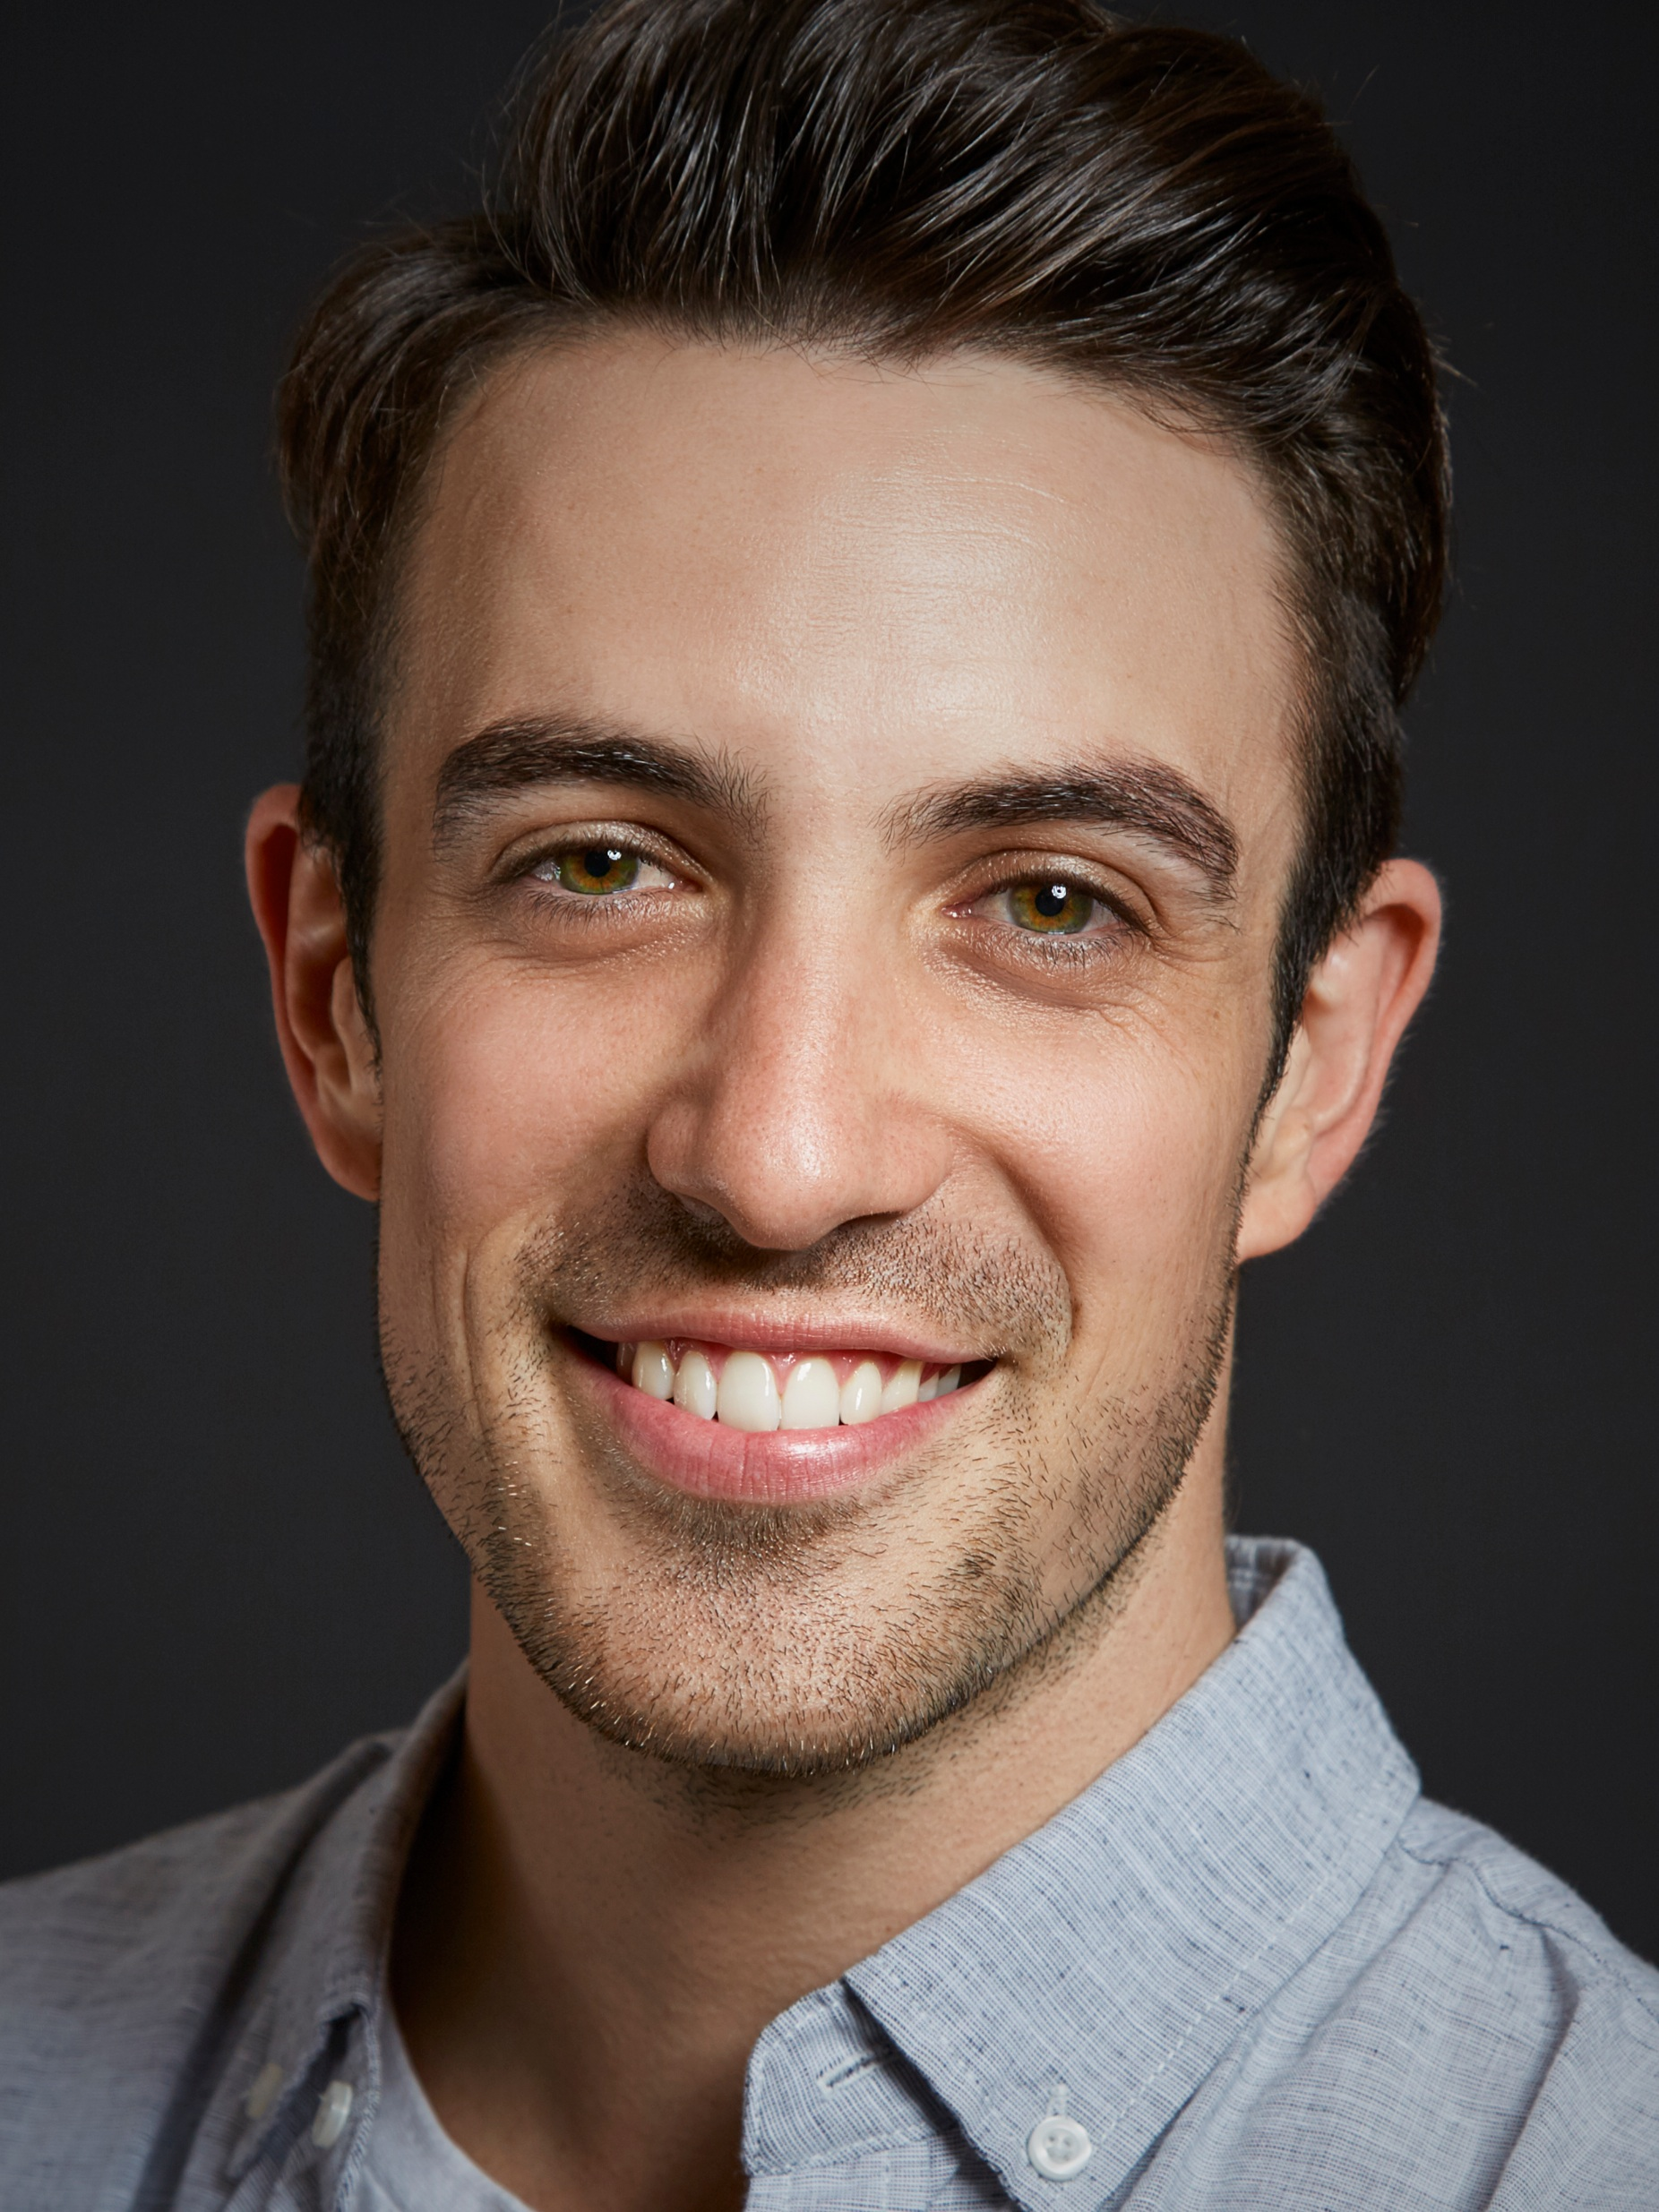 Choreographer - Dan Venz - Sweet Charity (Understudy Productions), Boy & Girl (Oscar Theatre Co), Grease The Arena Experience (Harvest Rain).